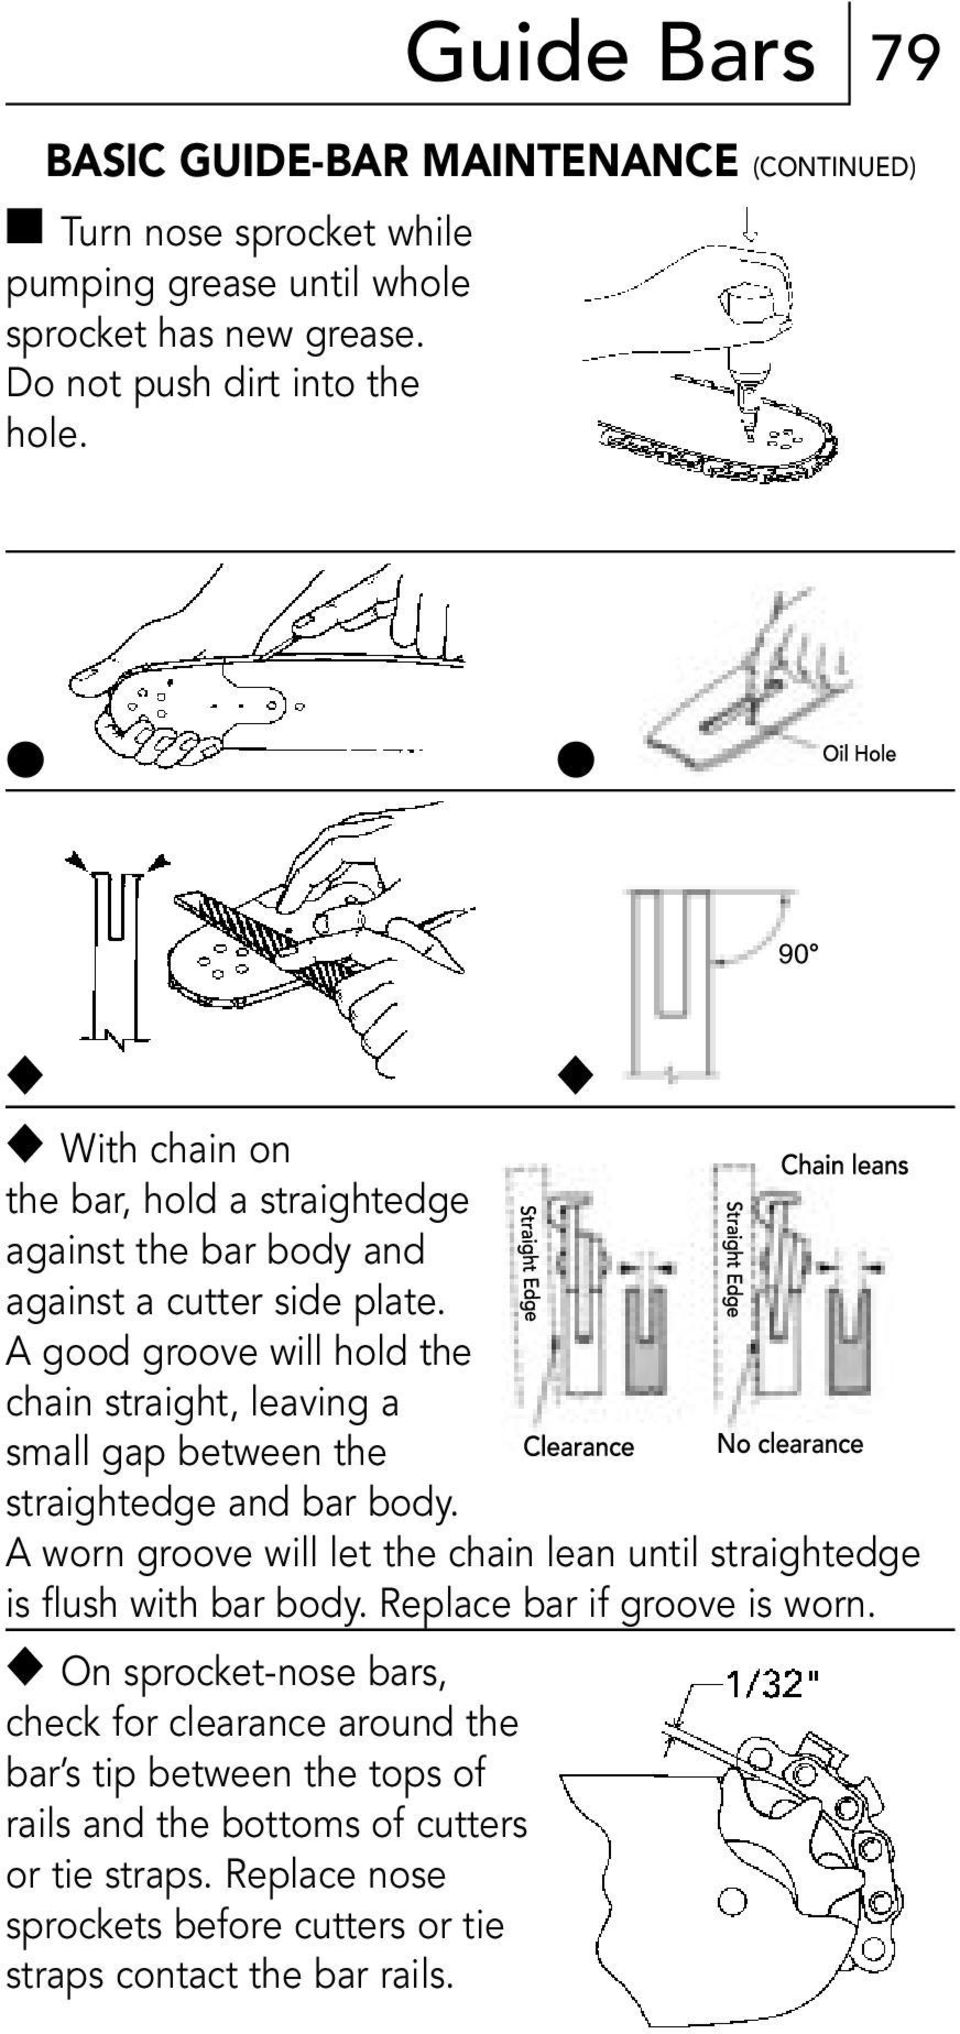 A good groove will hold the chain straight, leaving a small gap between the straightedge and bar body.